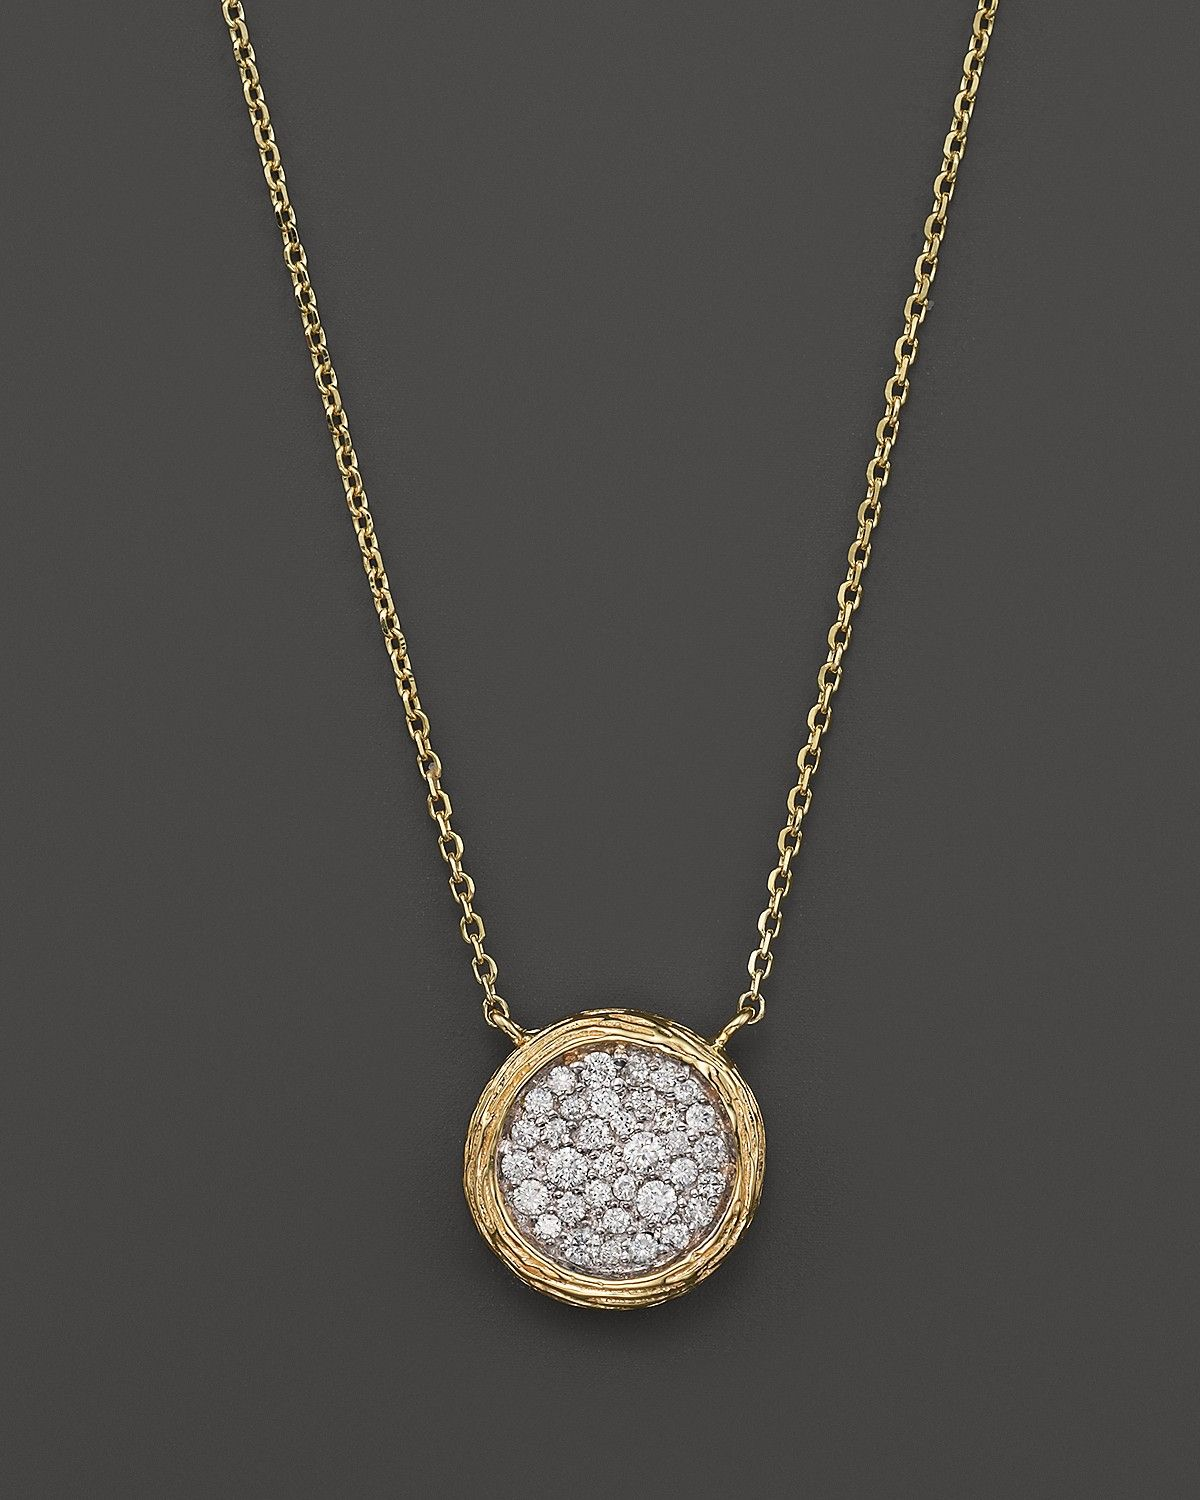 9ef1b569a96 Pavé Diamond Circle Pendant Necklace in 14K Yellow Gold, .35 ct ...